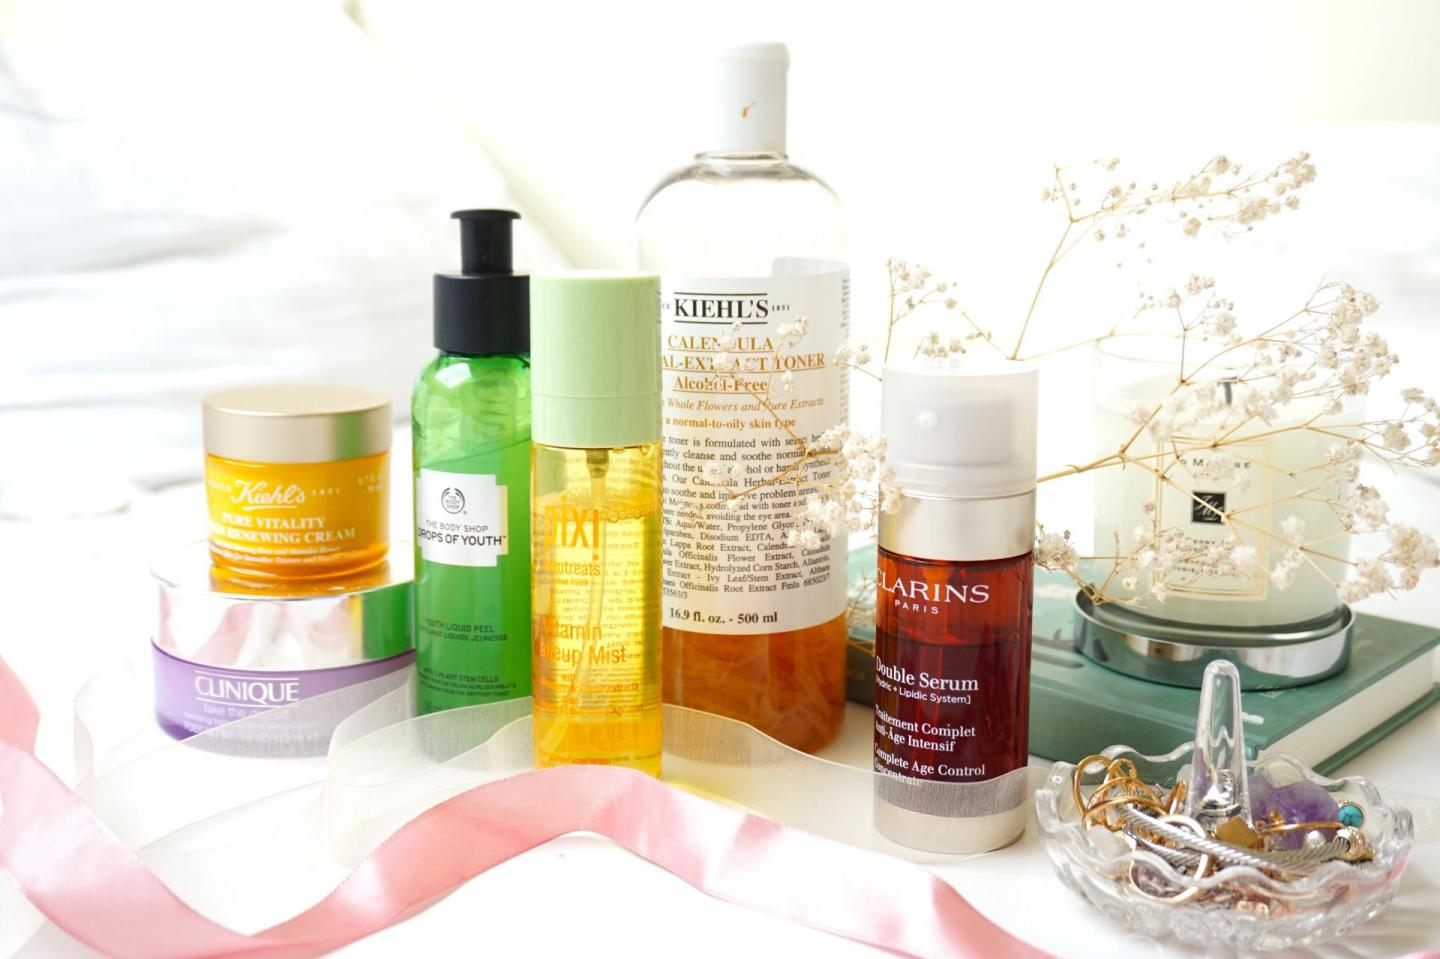 Skincare items that makes my skin happy